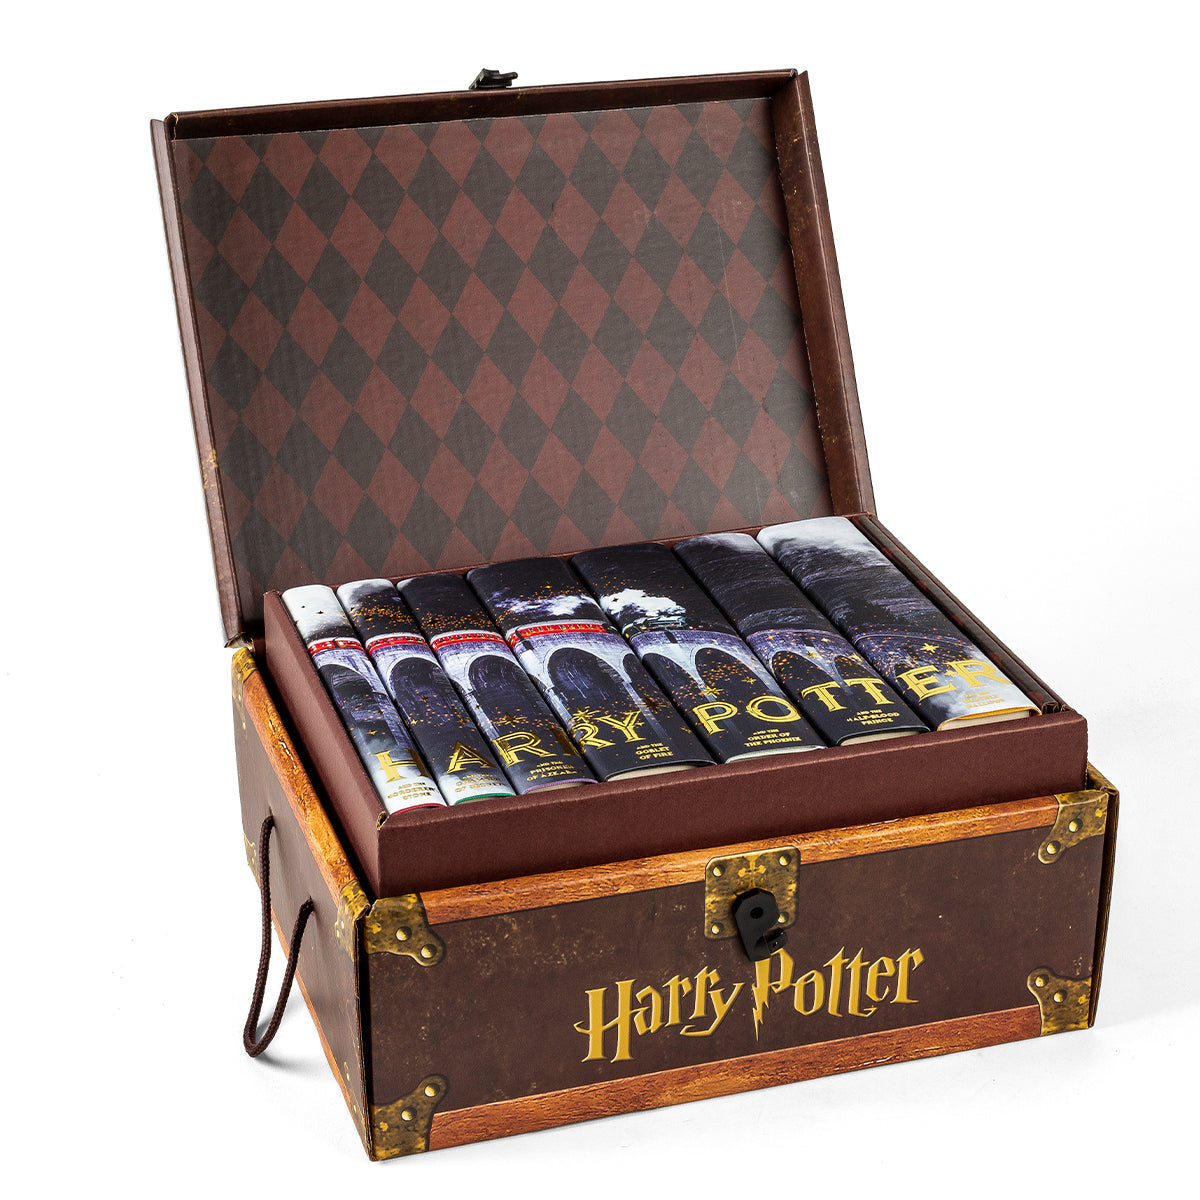 Harry Potter Train Book Set